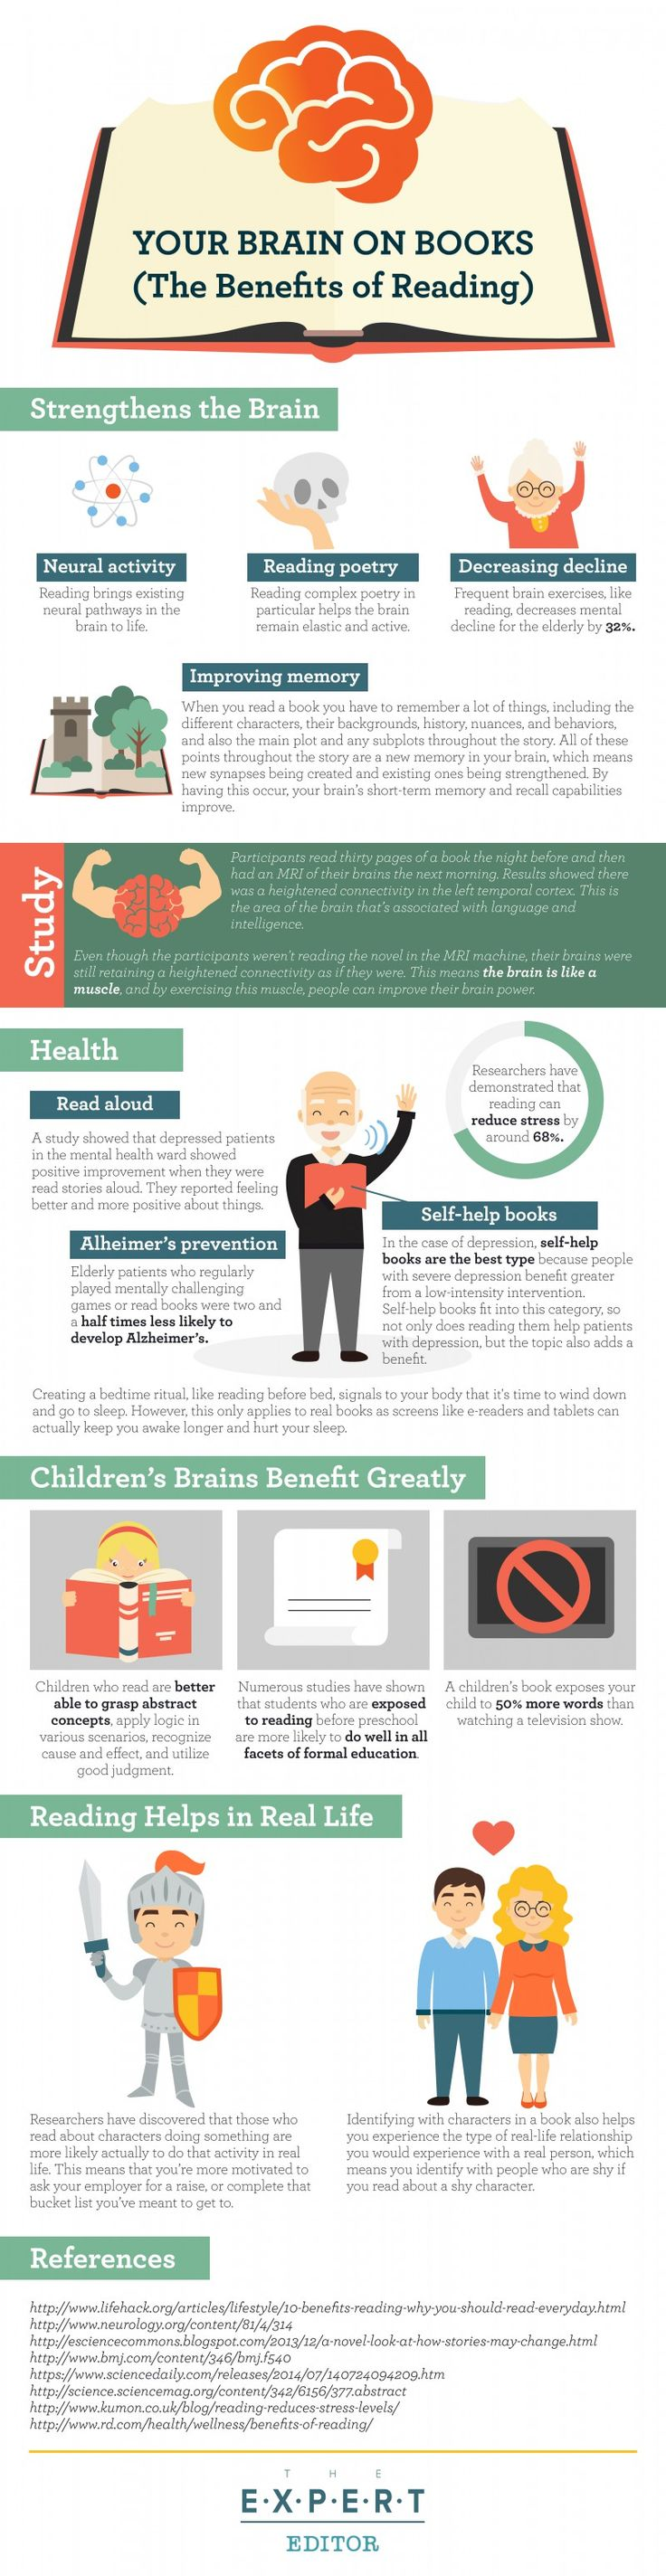 Your Brain on Books: The Benefits of Reading #Infographic #Books #Brain